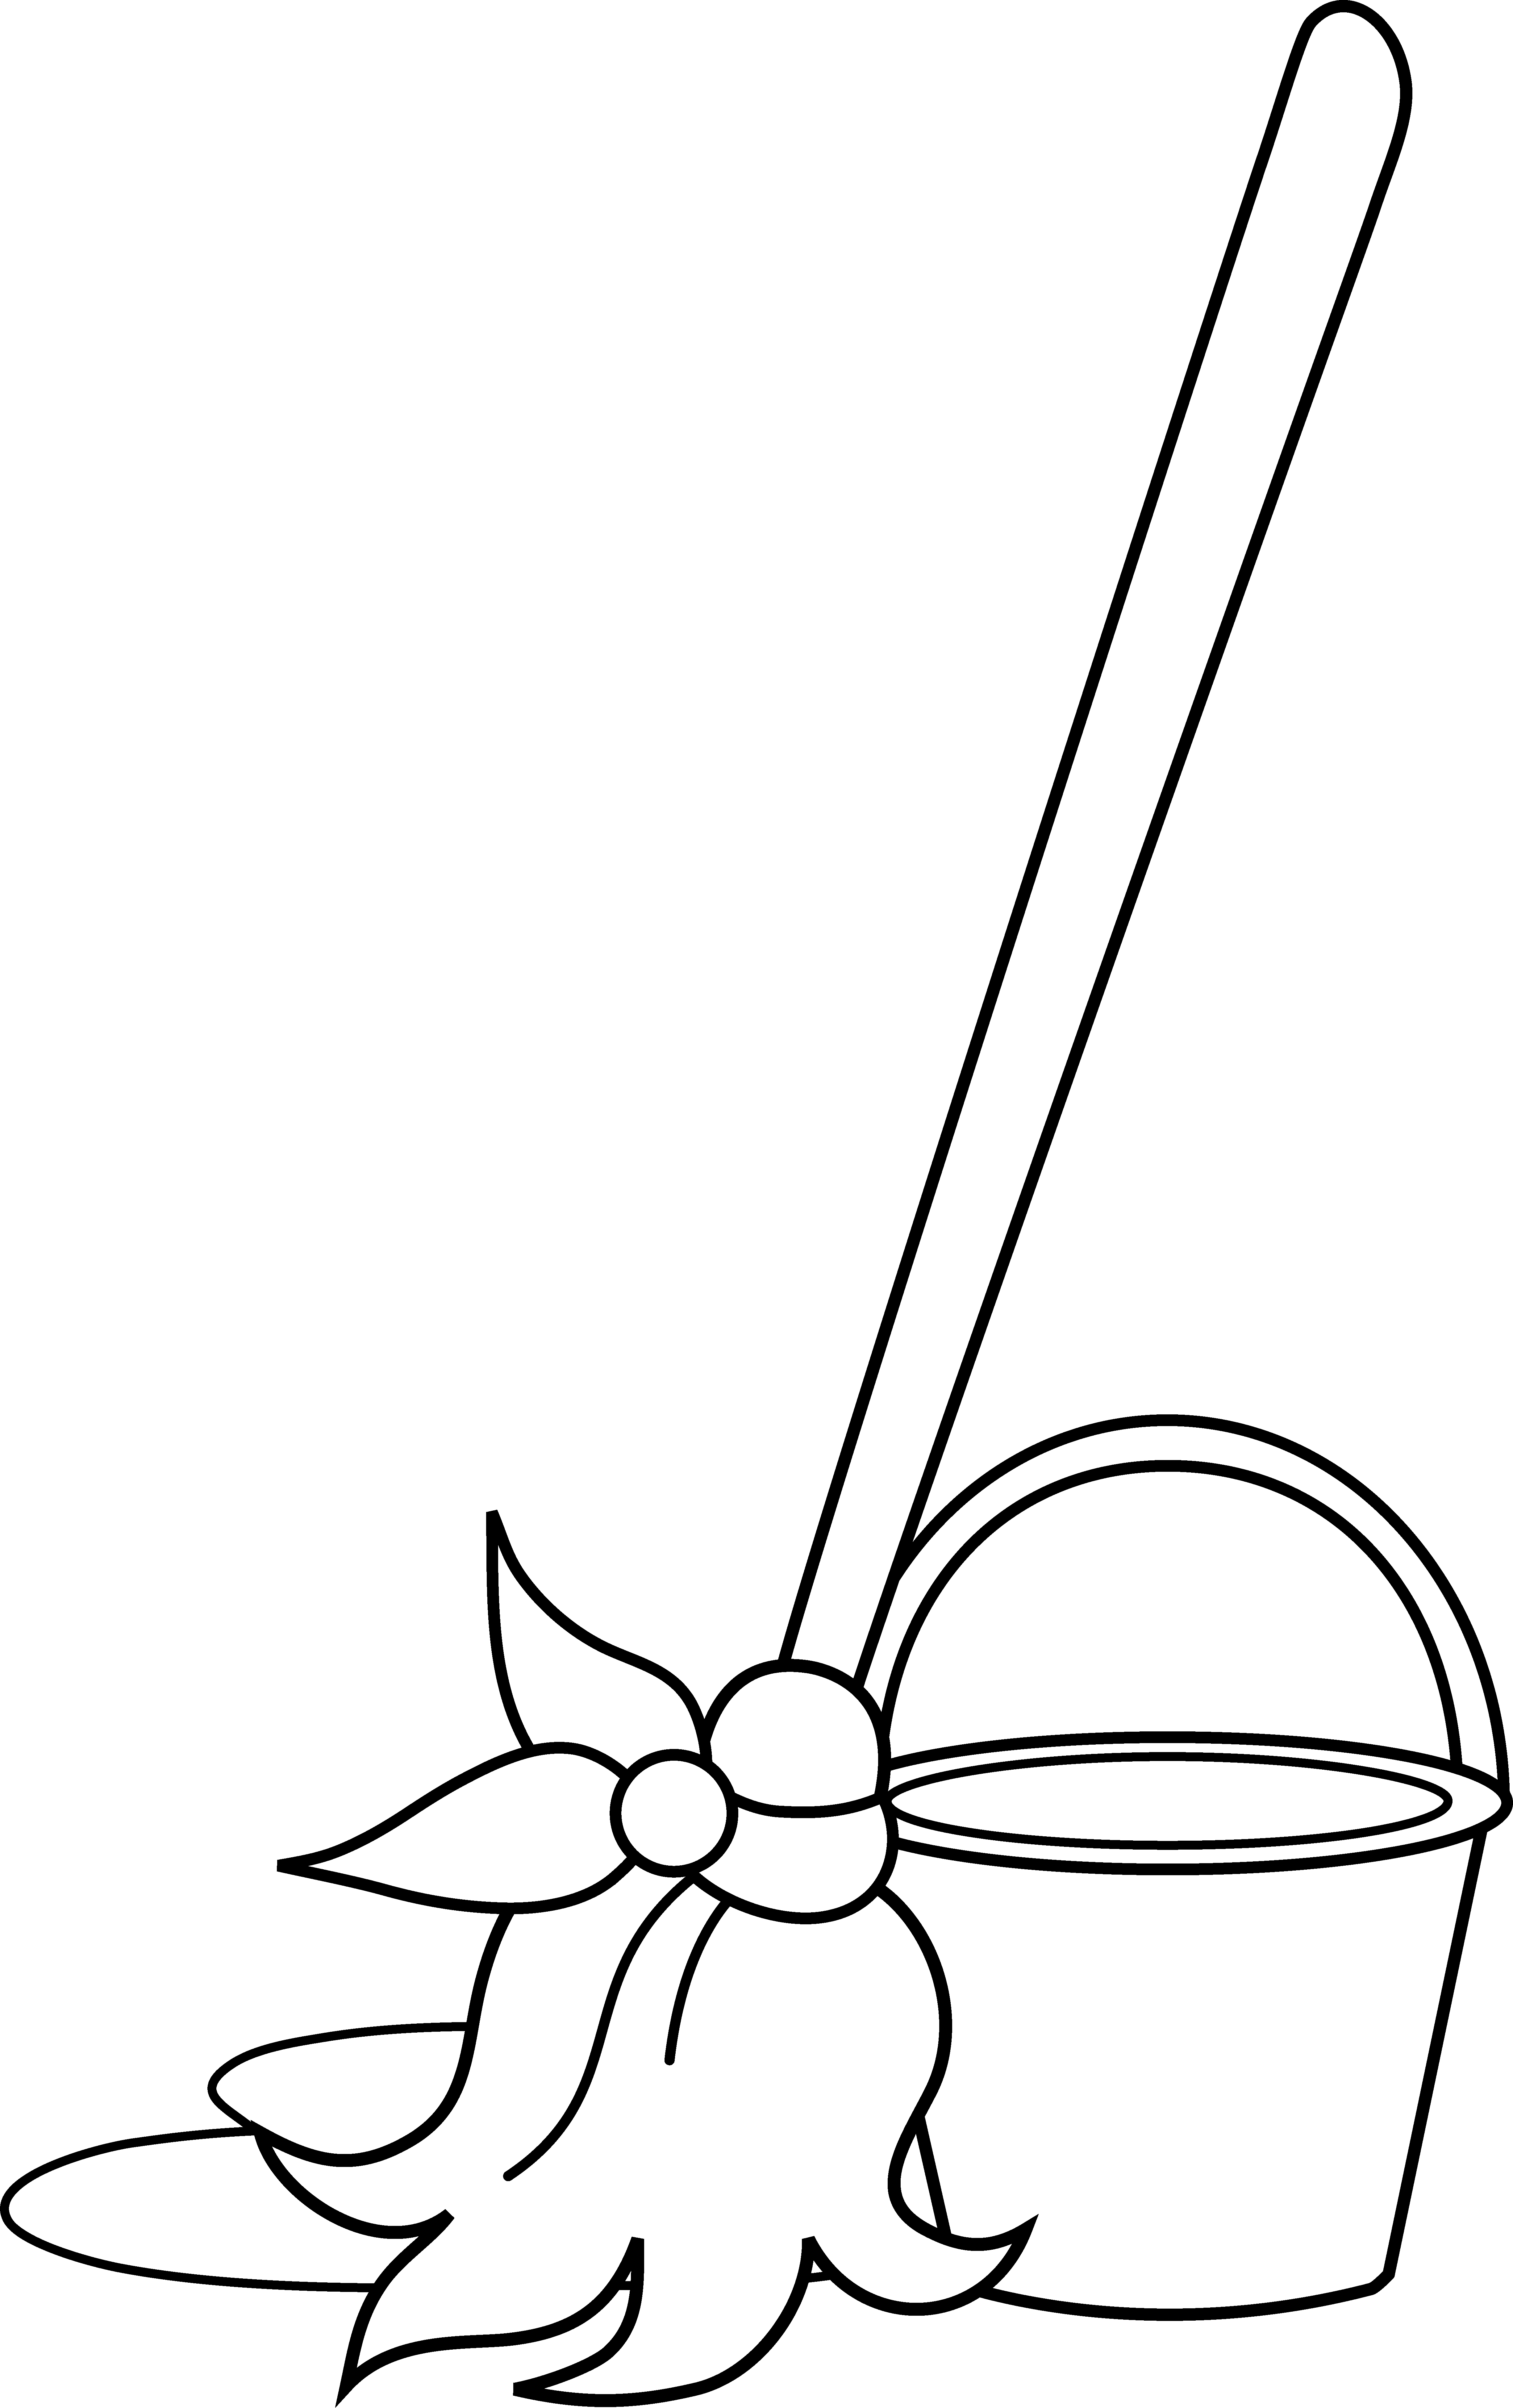 vector library download Mop and Bucket Coloring Page